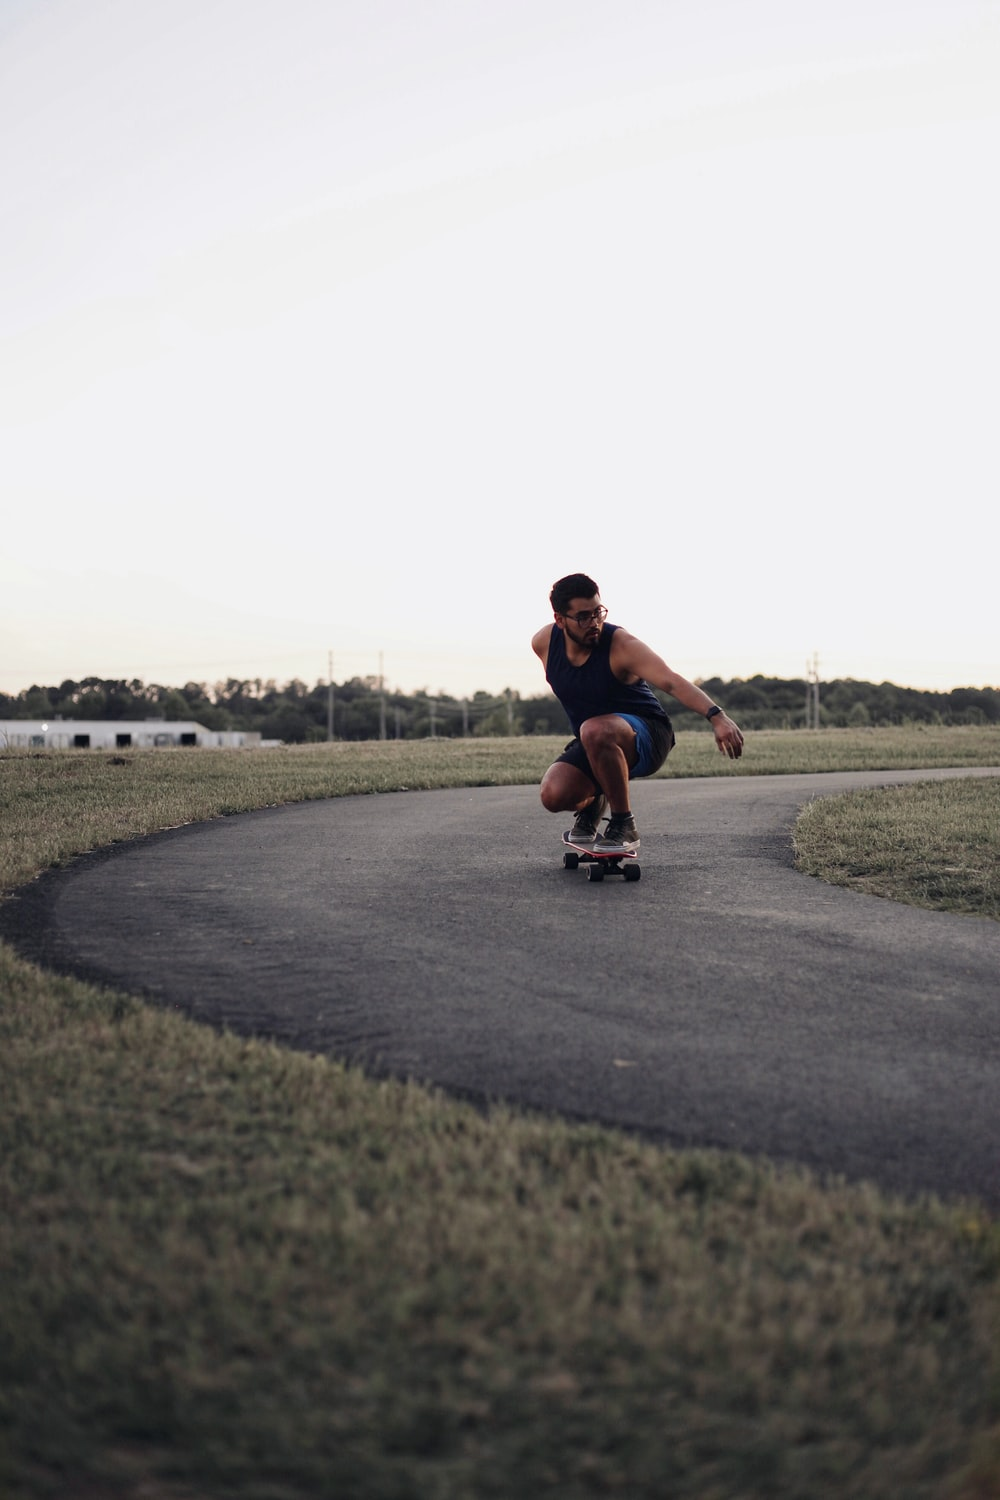 man in red t-shirt and black shorts riding skateboard during daytime